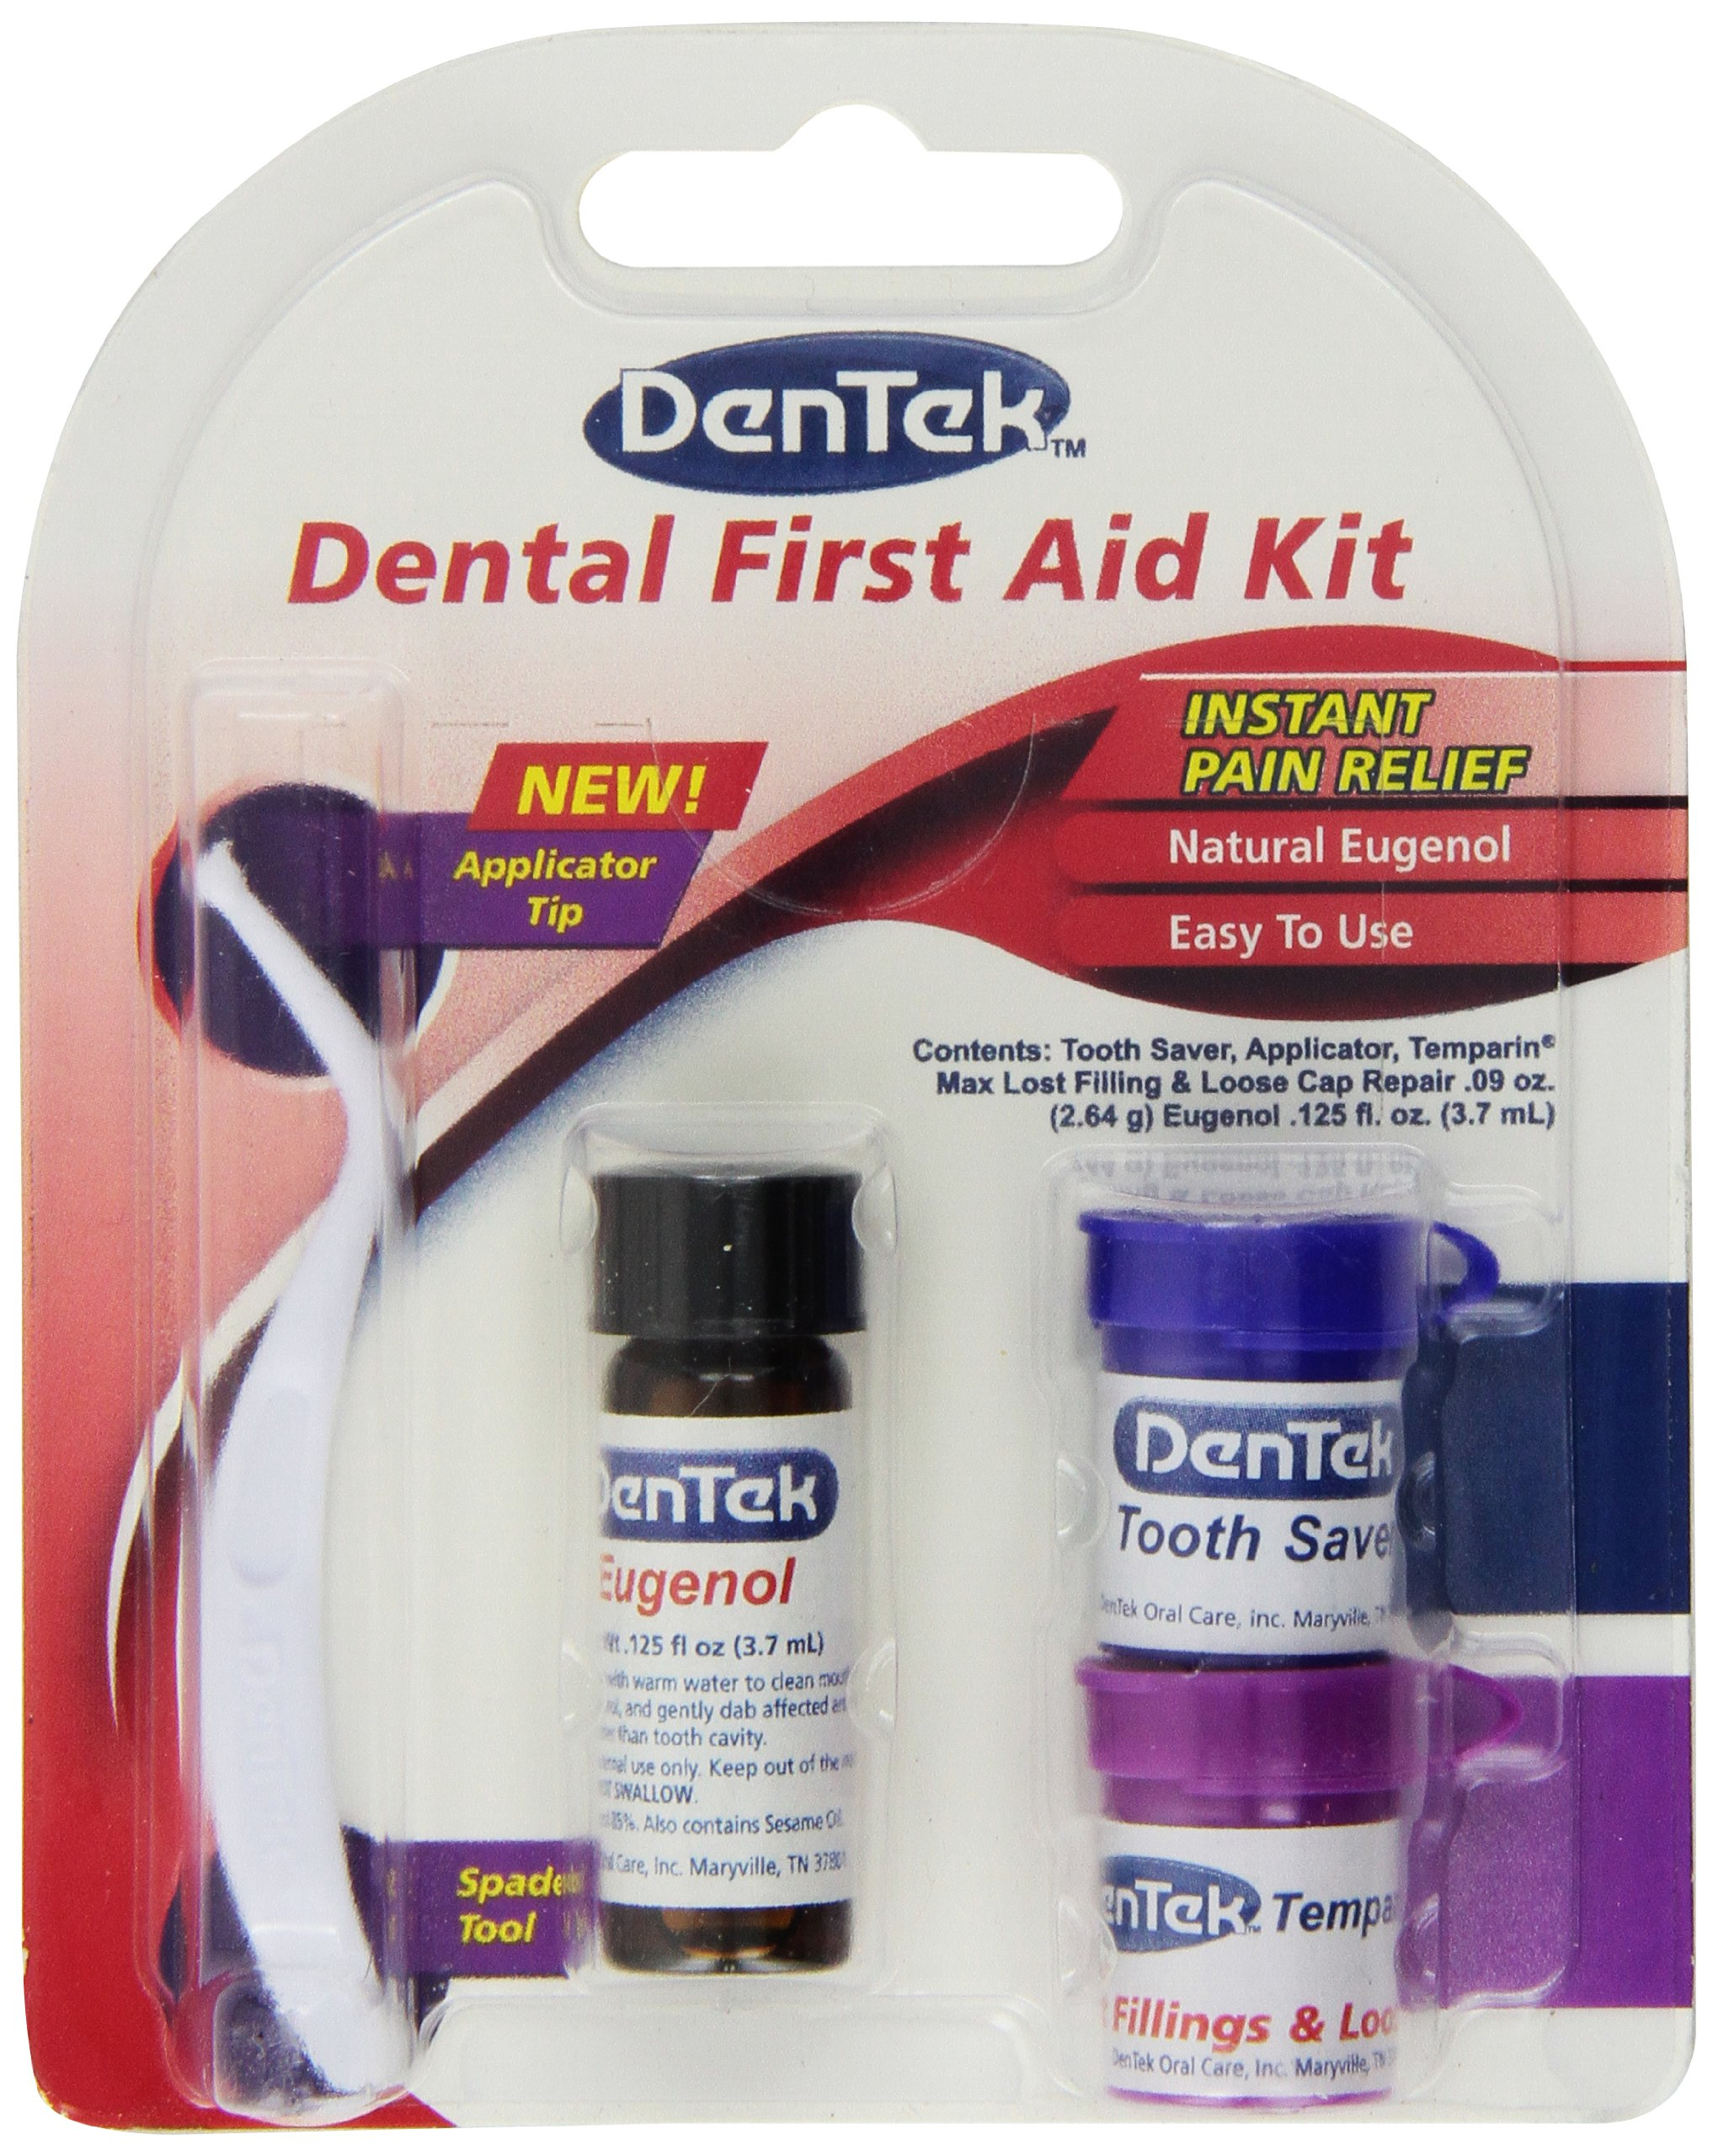 DenTek Toothache Kit | Instant Pain Relief | Contains Applicator, Toothache Medication, Temporary Filler, and Tooth Saver Jar